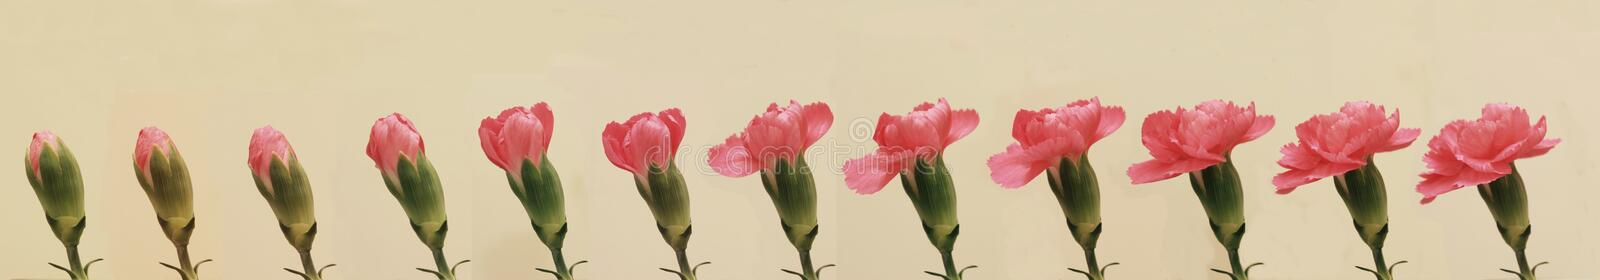 Carnation Flower royalty free stock image